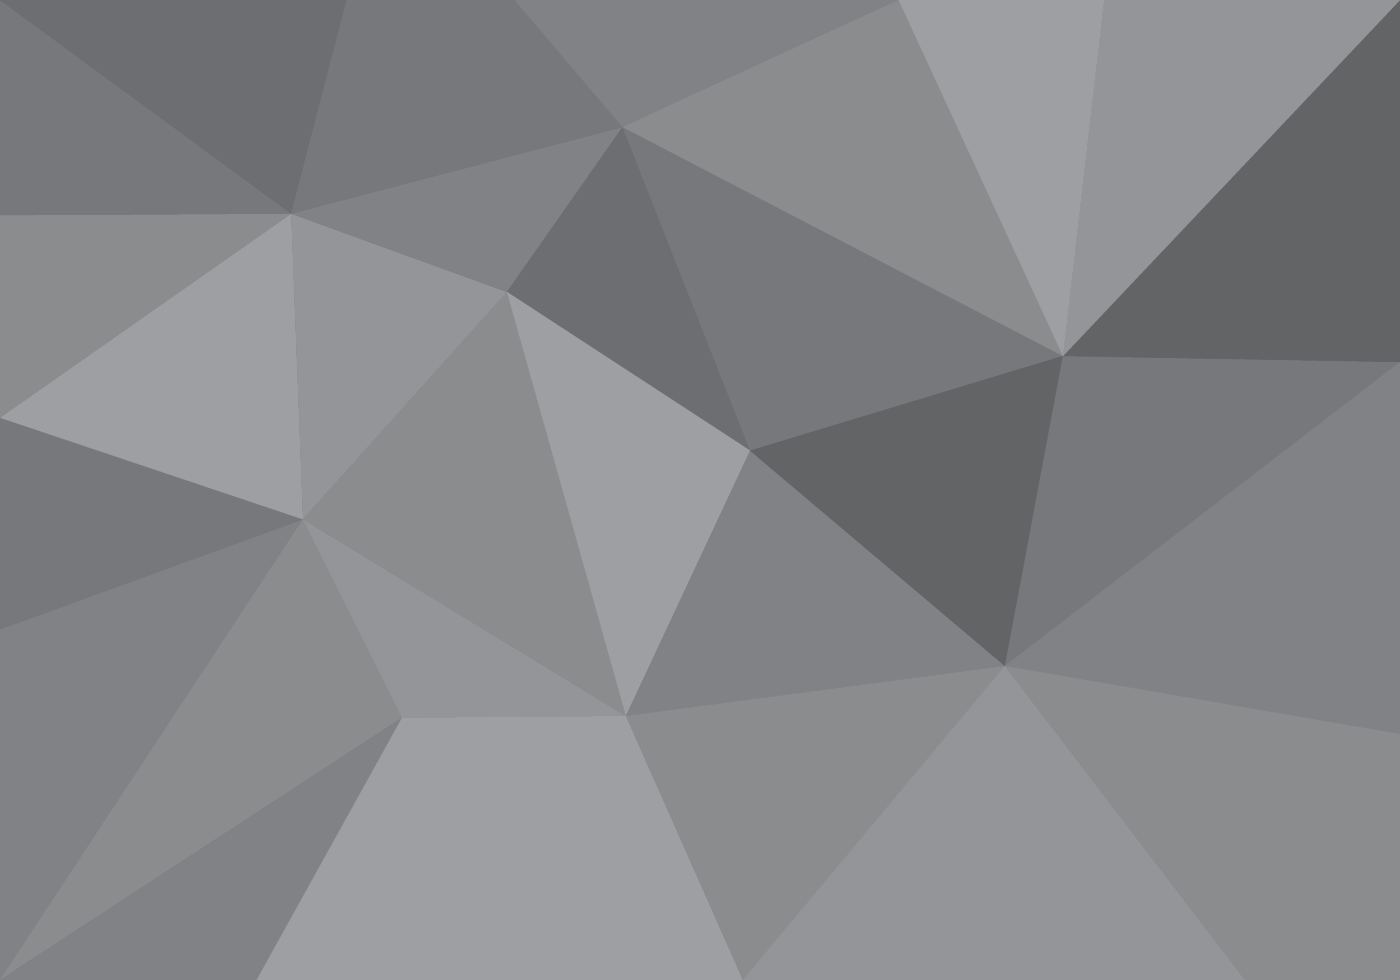 Gray Gradient Free Vector Art 2280 Free Downloads